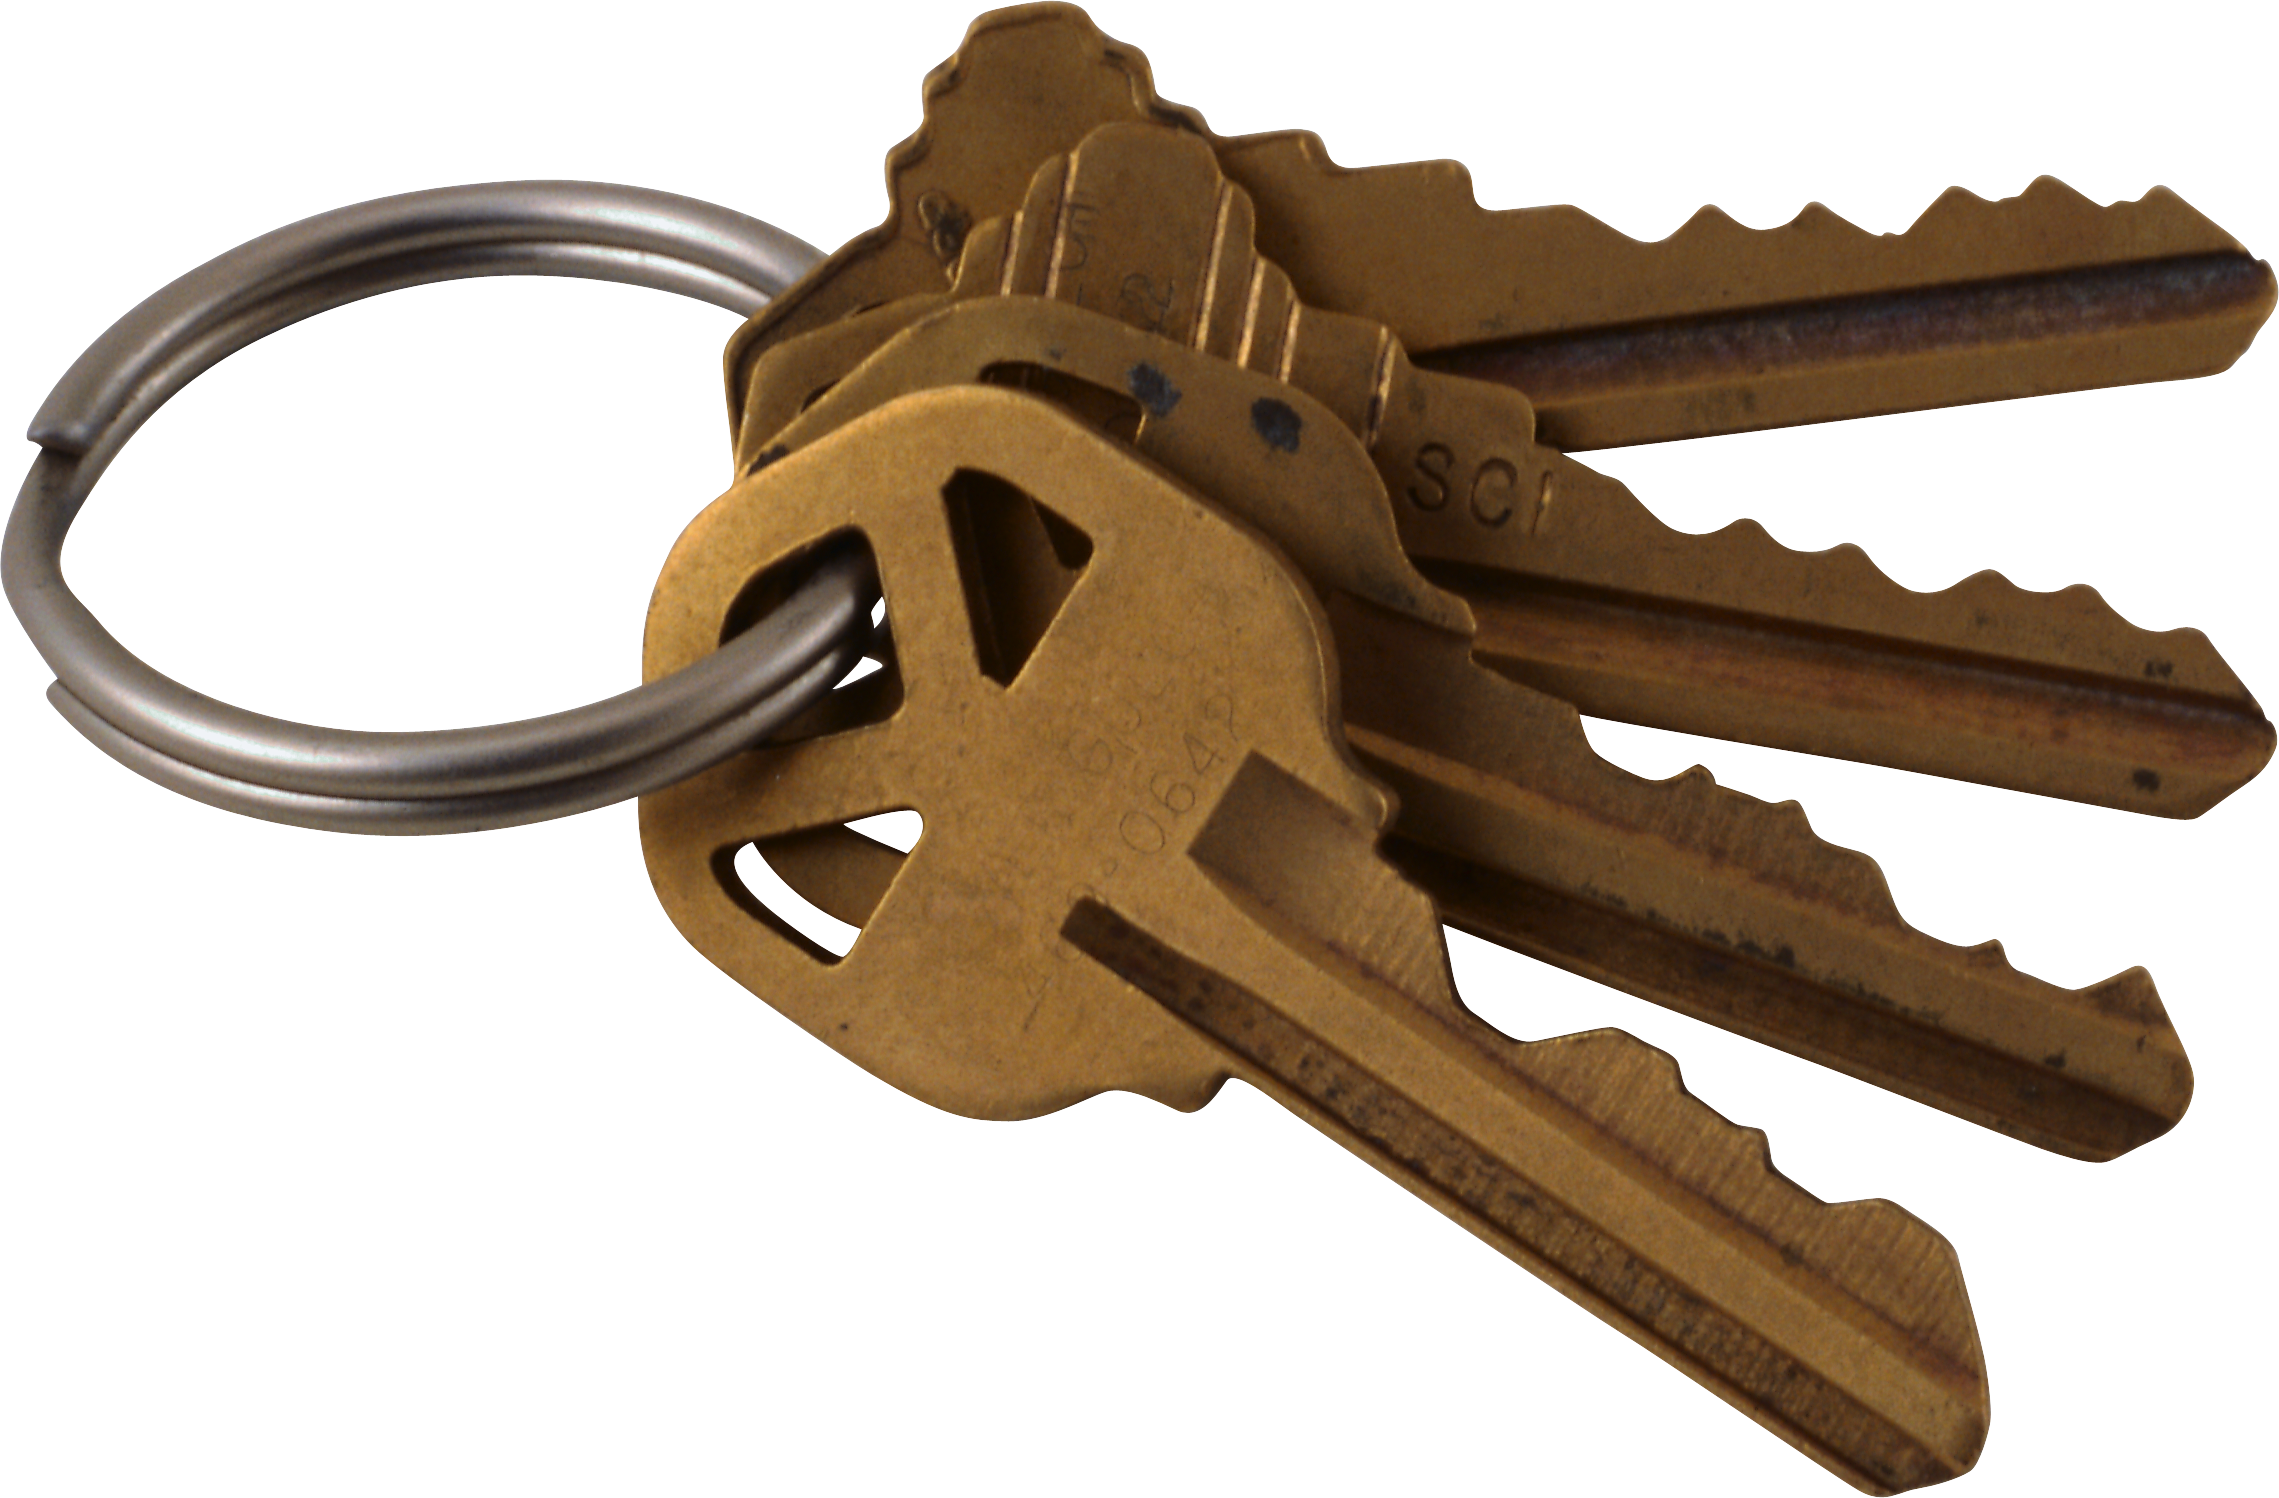 Png images free pictures. Motorcycle clipart key